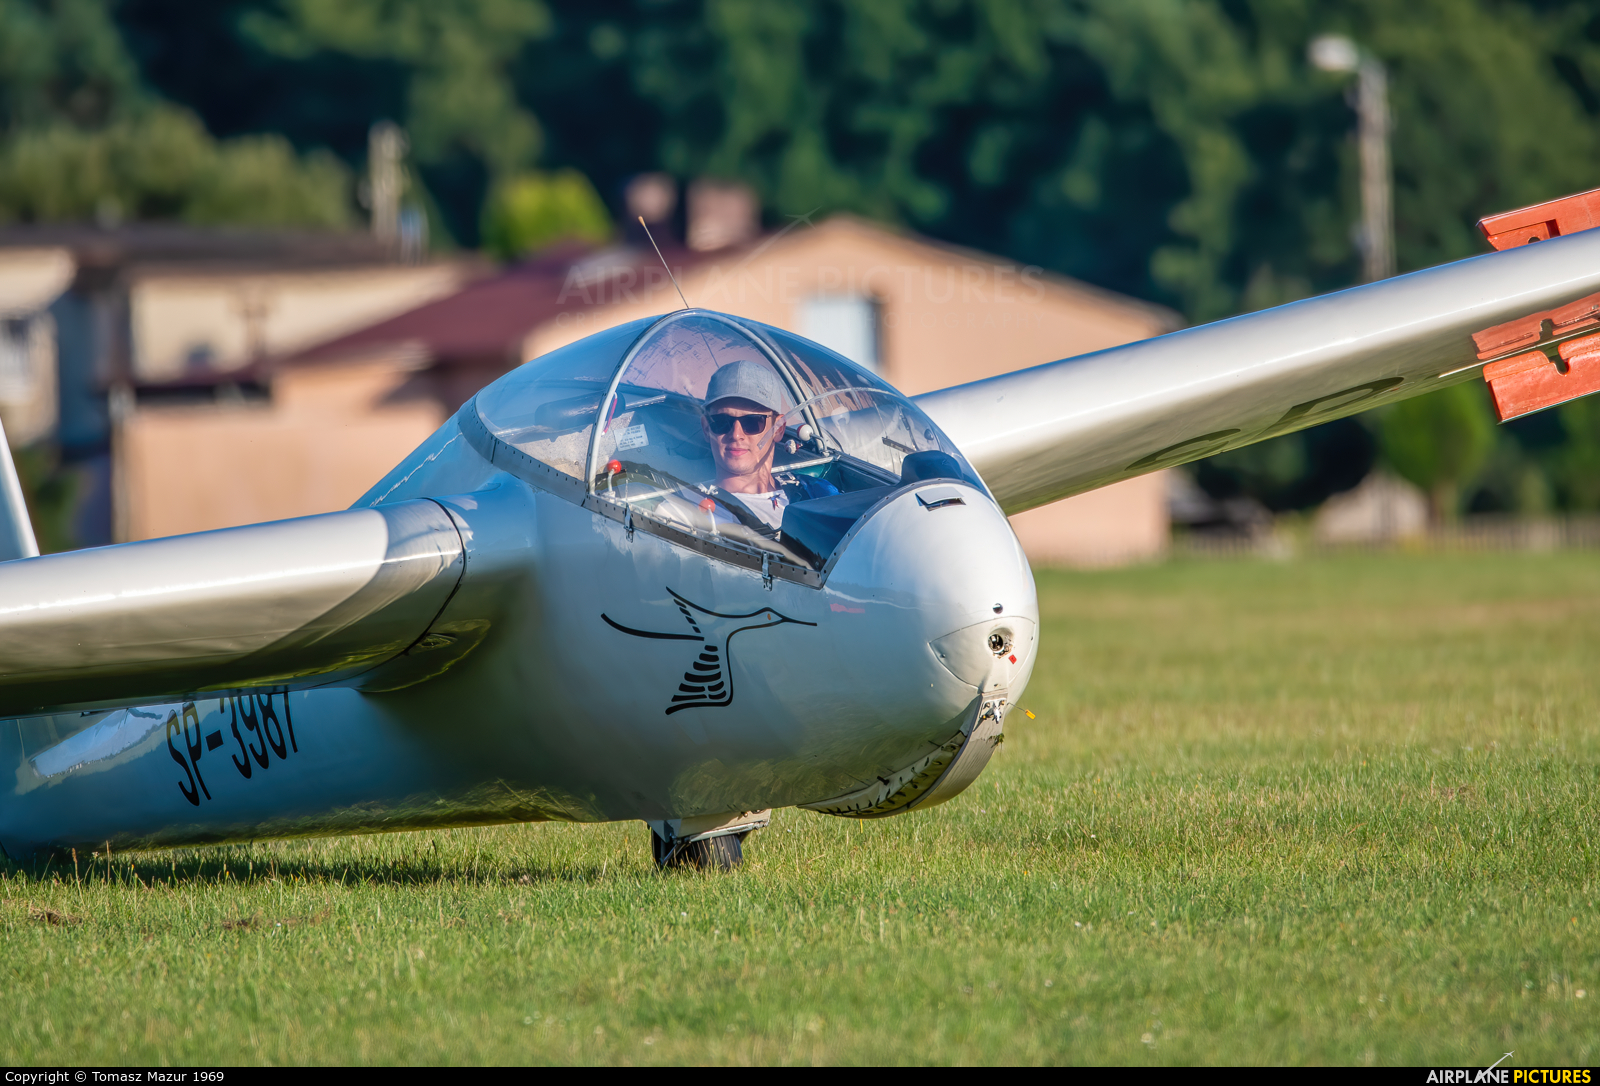 Aeroclub ROW SP-3987 aircraft at Rybnik - Gotartowice